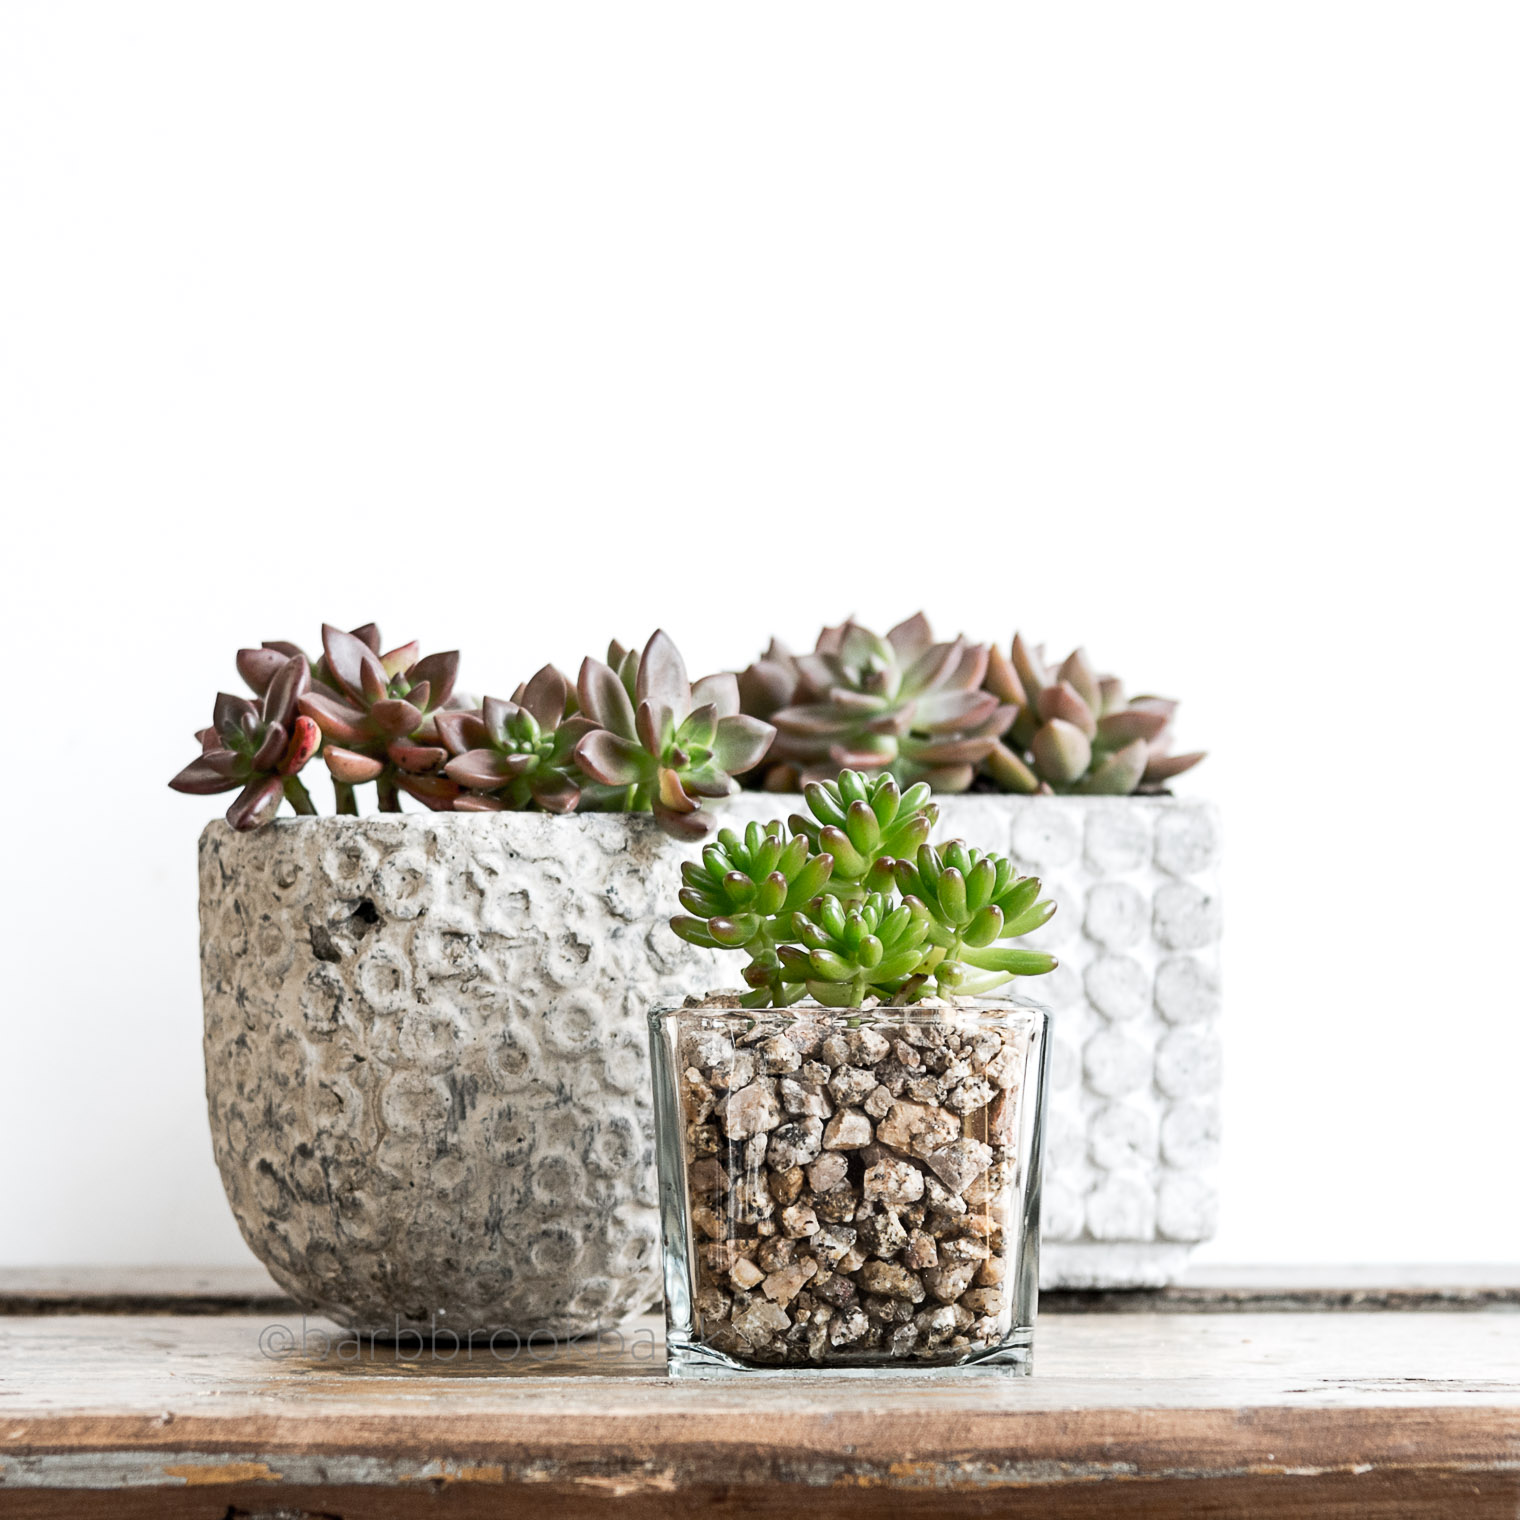 5 Great Ideas for Succulent Containers, Keeping With the Times